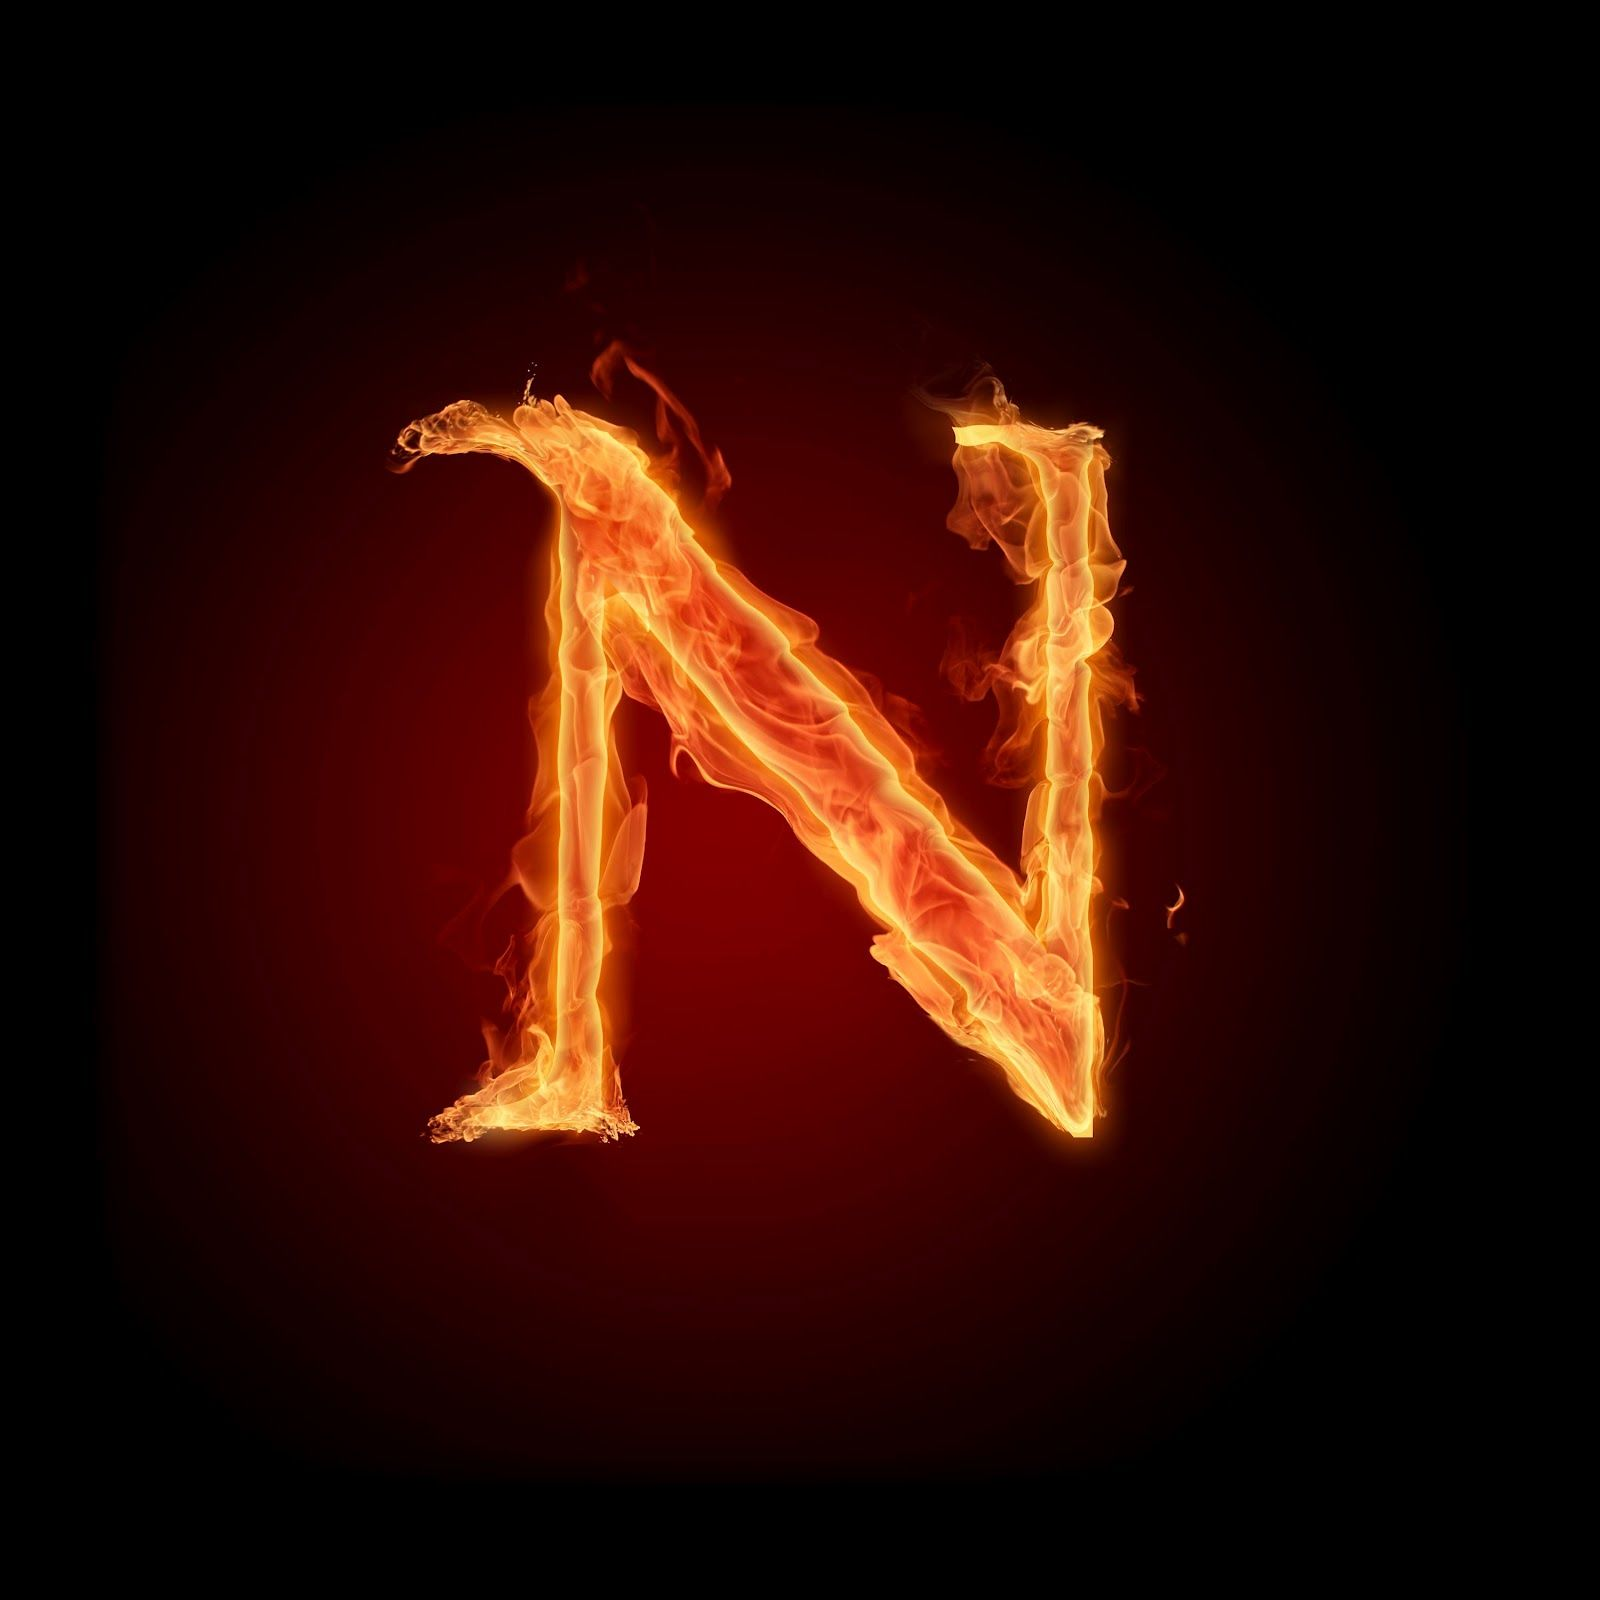 N alphabet wallpaper mobile best games wallpapers pinterest n alphabet wallpaper mobile altavistaventures Image collections